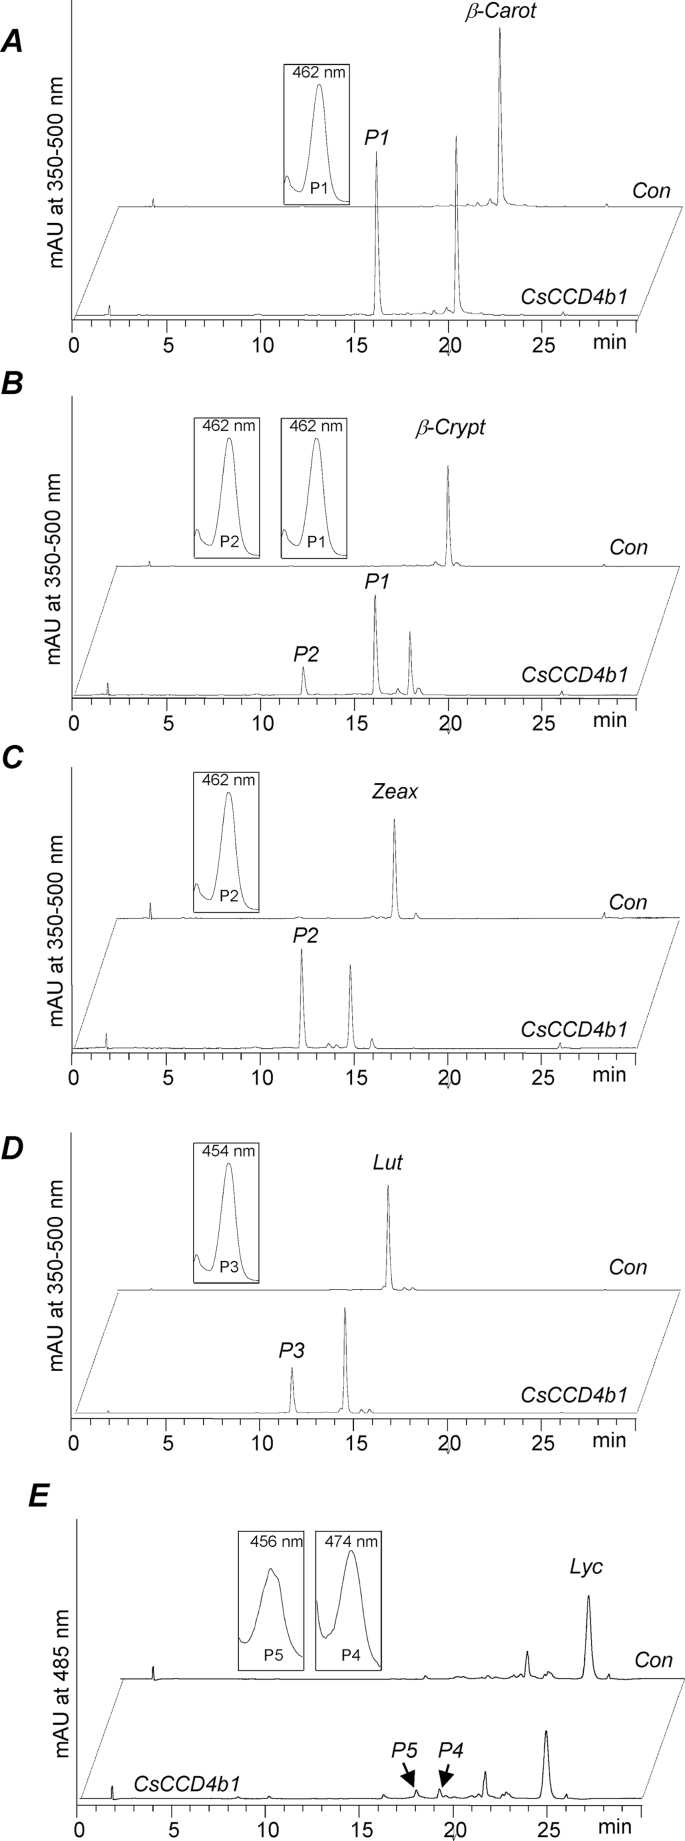 HPLC analysis of the in vitro enzymatic activity of Citrus CCD4b1. Assays were incubated for 1h, except for lycopene which was incubated for 6h. The crude lysate of thioredoxin-CCD4b1-expressing E.coli cells (CCD4b1) converted (A) β-carotene into β-apo-8′-carotenal (P1), (B) β-cryptoxanthin into P1 and β-citraurin (P2), (C) zeaxanthin into P2, (D) lutein into 3-OH-ε-apo-8′-carotenal (α-citraurin) (P3), and (E) lycopene into apo-8′-lycopenal (P4) and apo-10′-lycopenal (P5). UV-Vis spectra of obtained products are depicted in the insets. No conversion was observed with the corresponding controls corresponding to crude lysates of thioredoxin-overexpressing cells (Con).